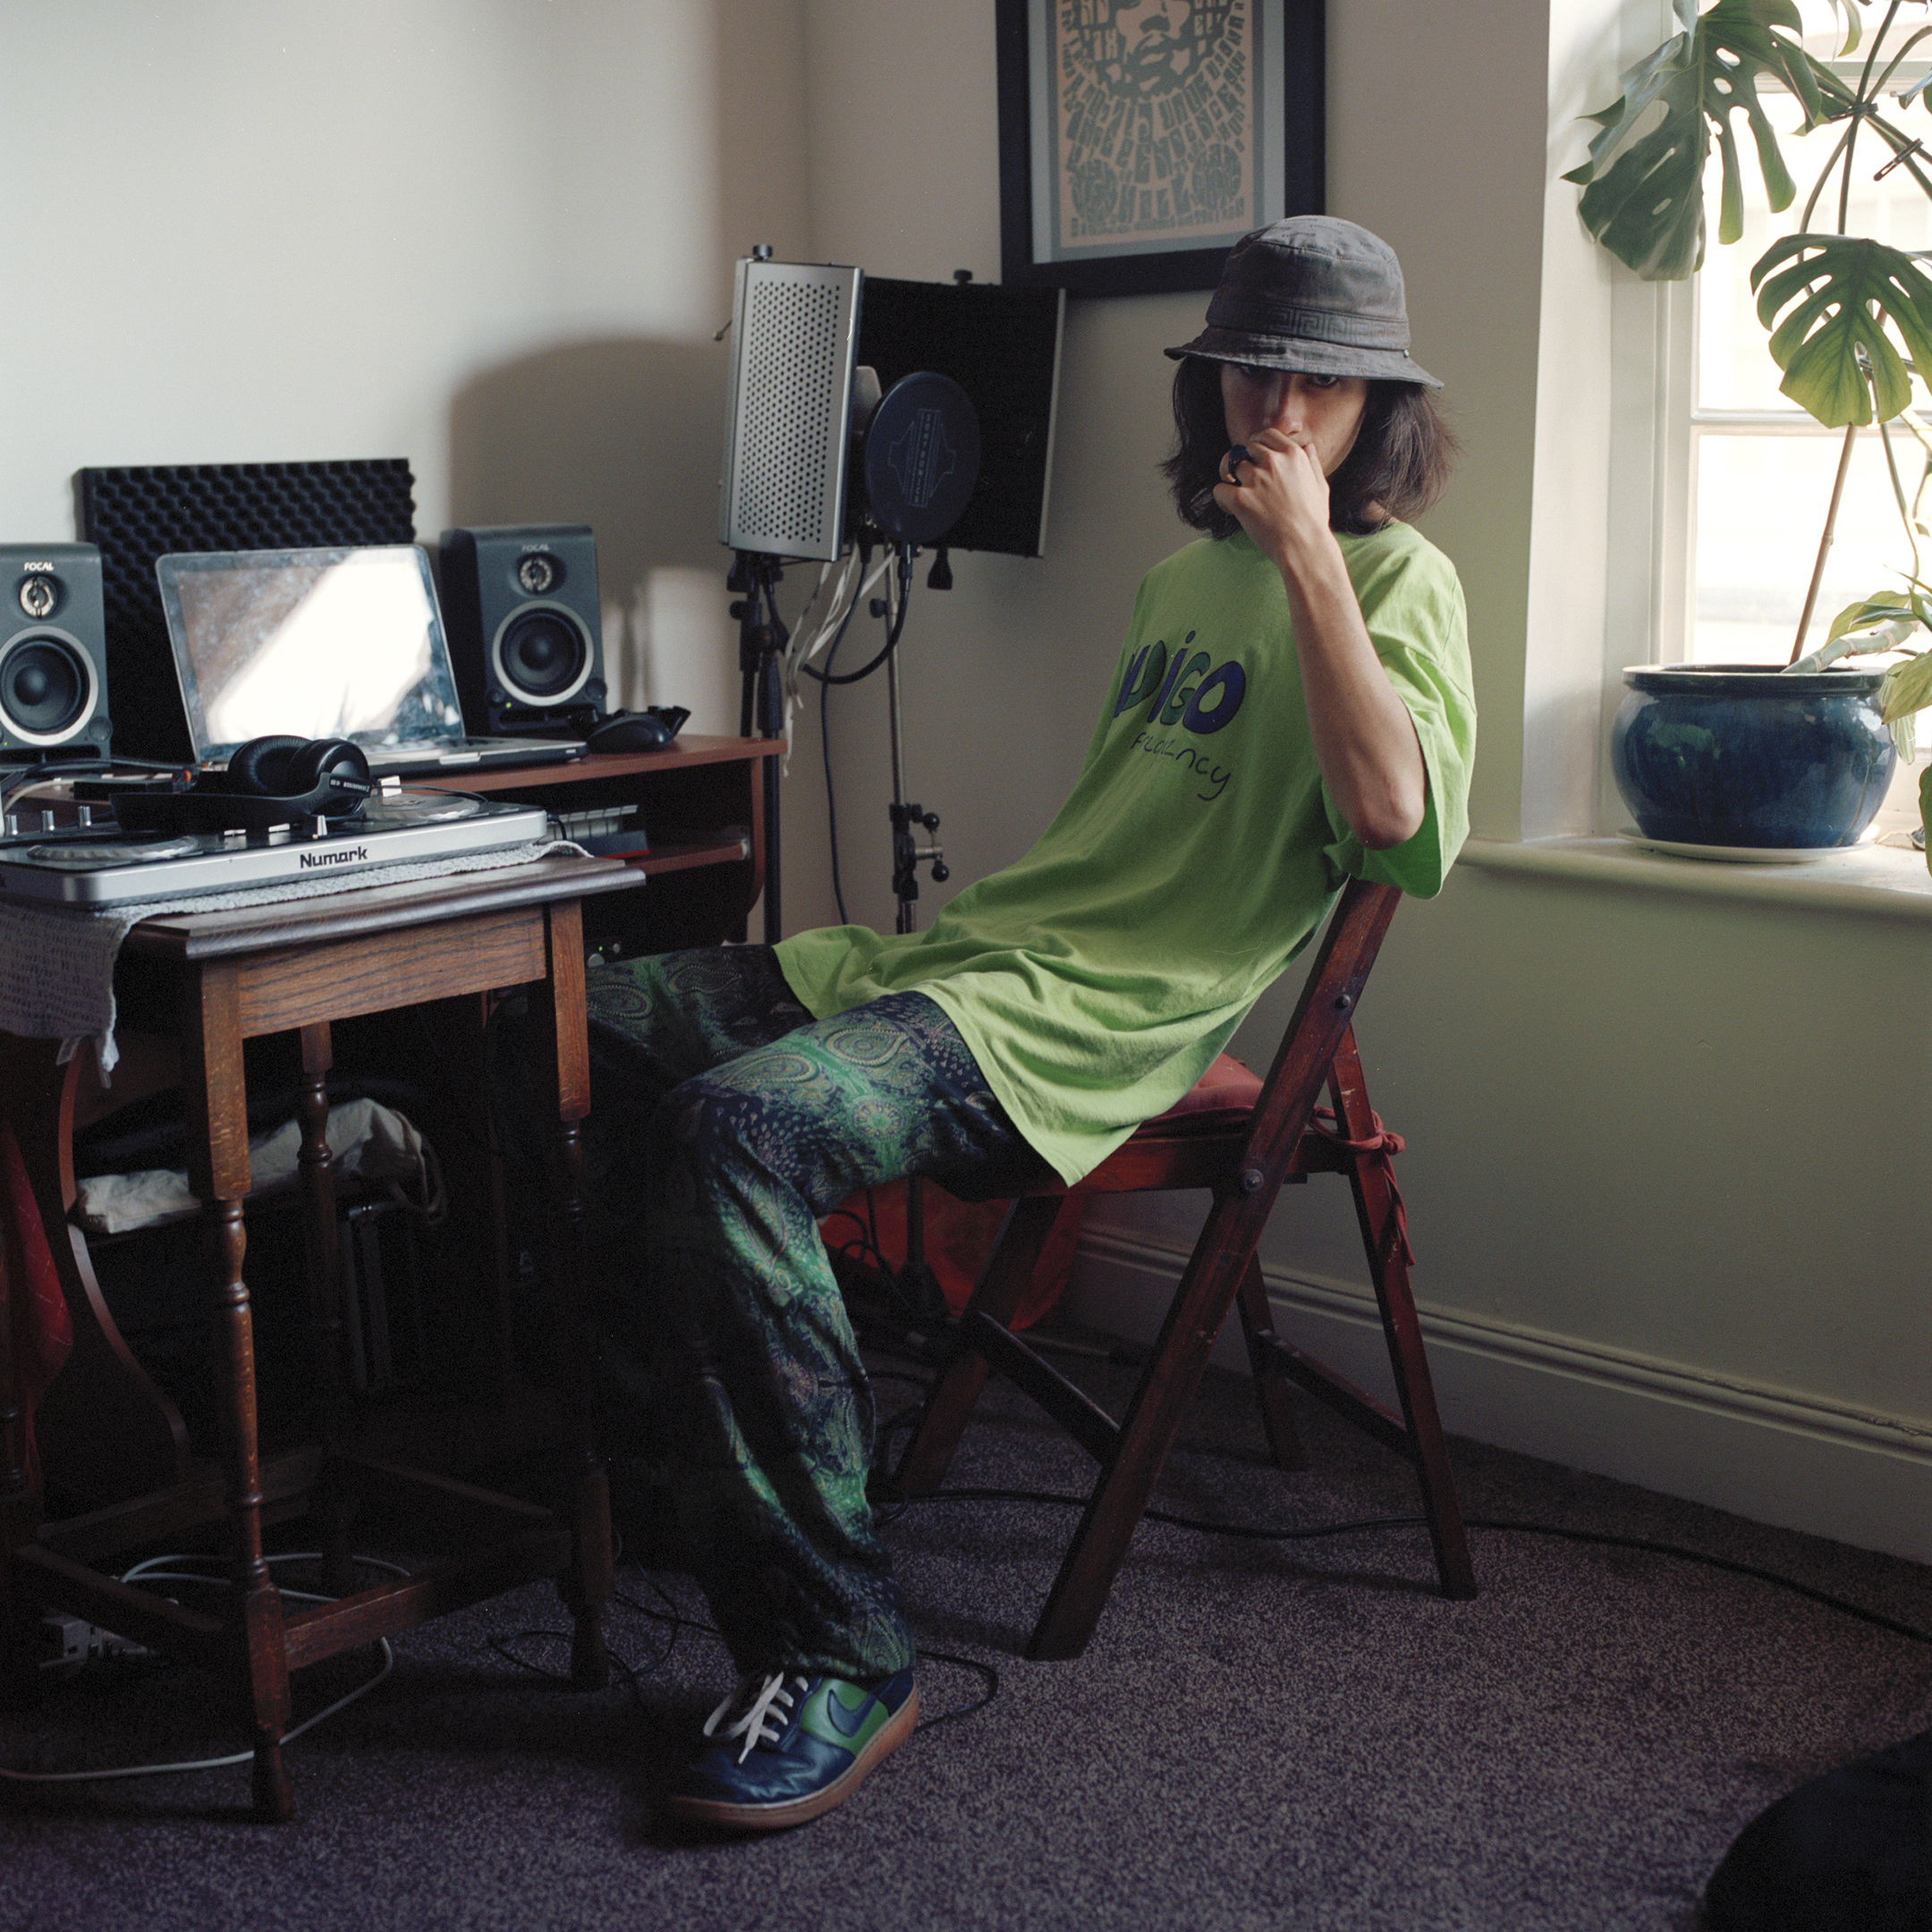 guy sat in front of a laptop and speakers wearing bucket hat and paisley trousers